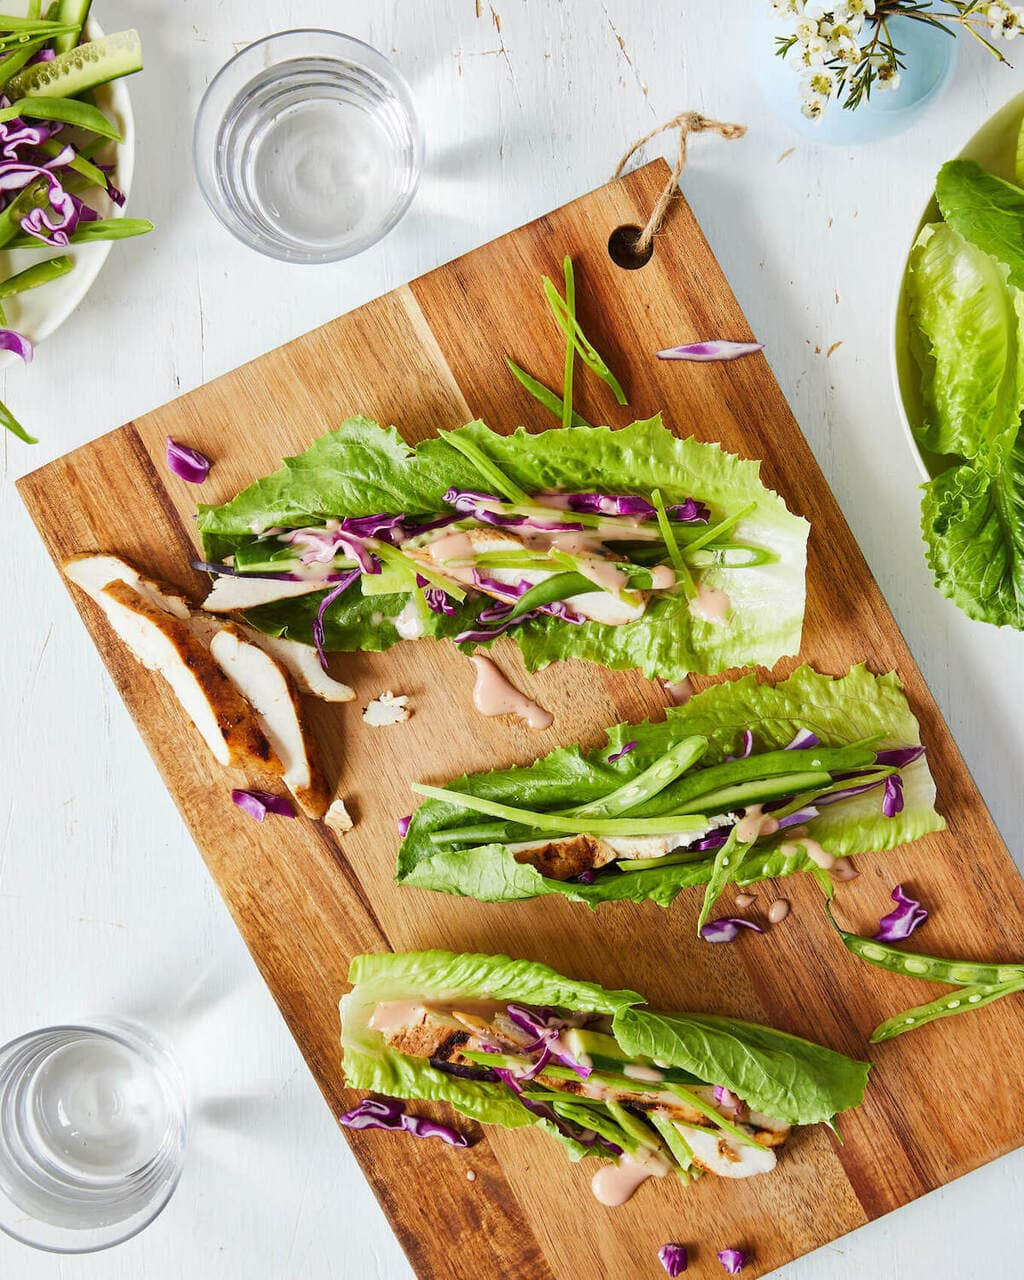 Grilled chicken lettuce wraps on a cutting board with glasses